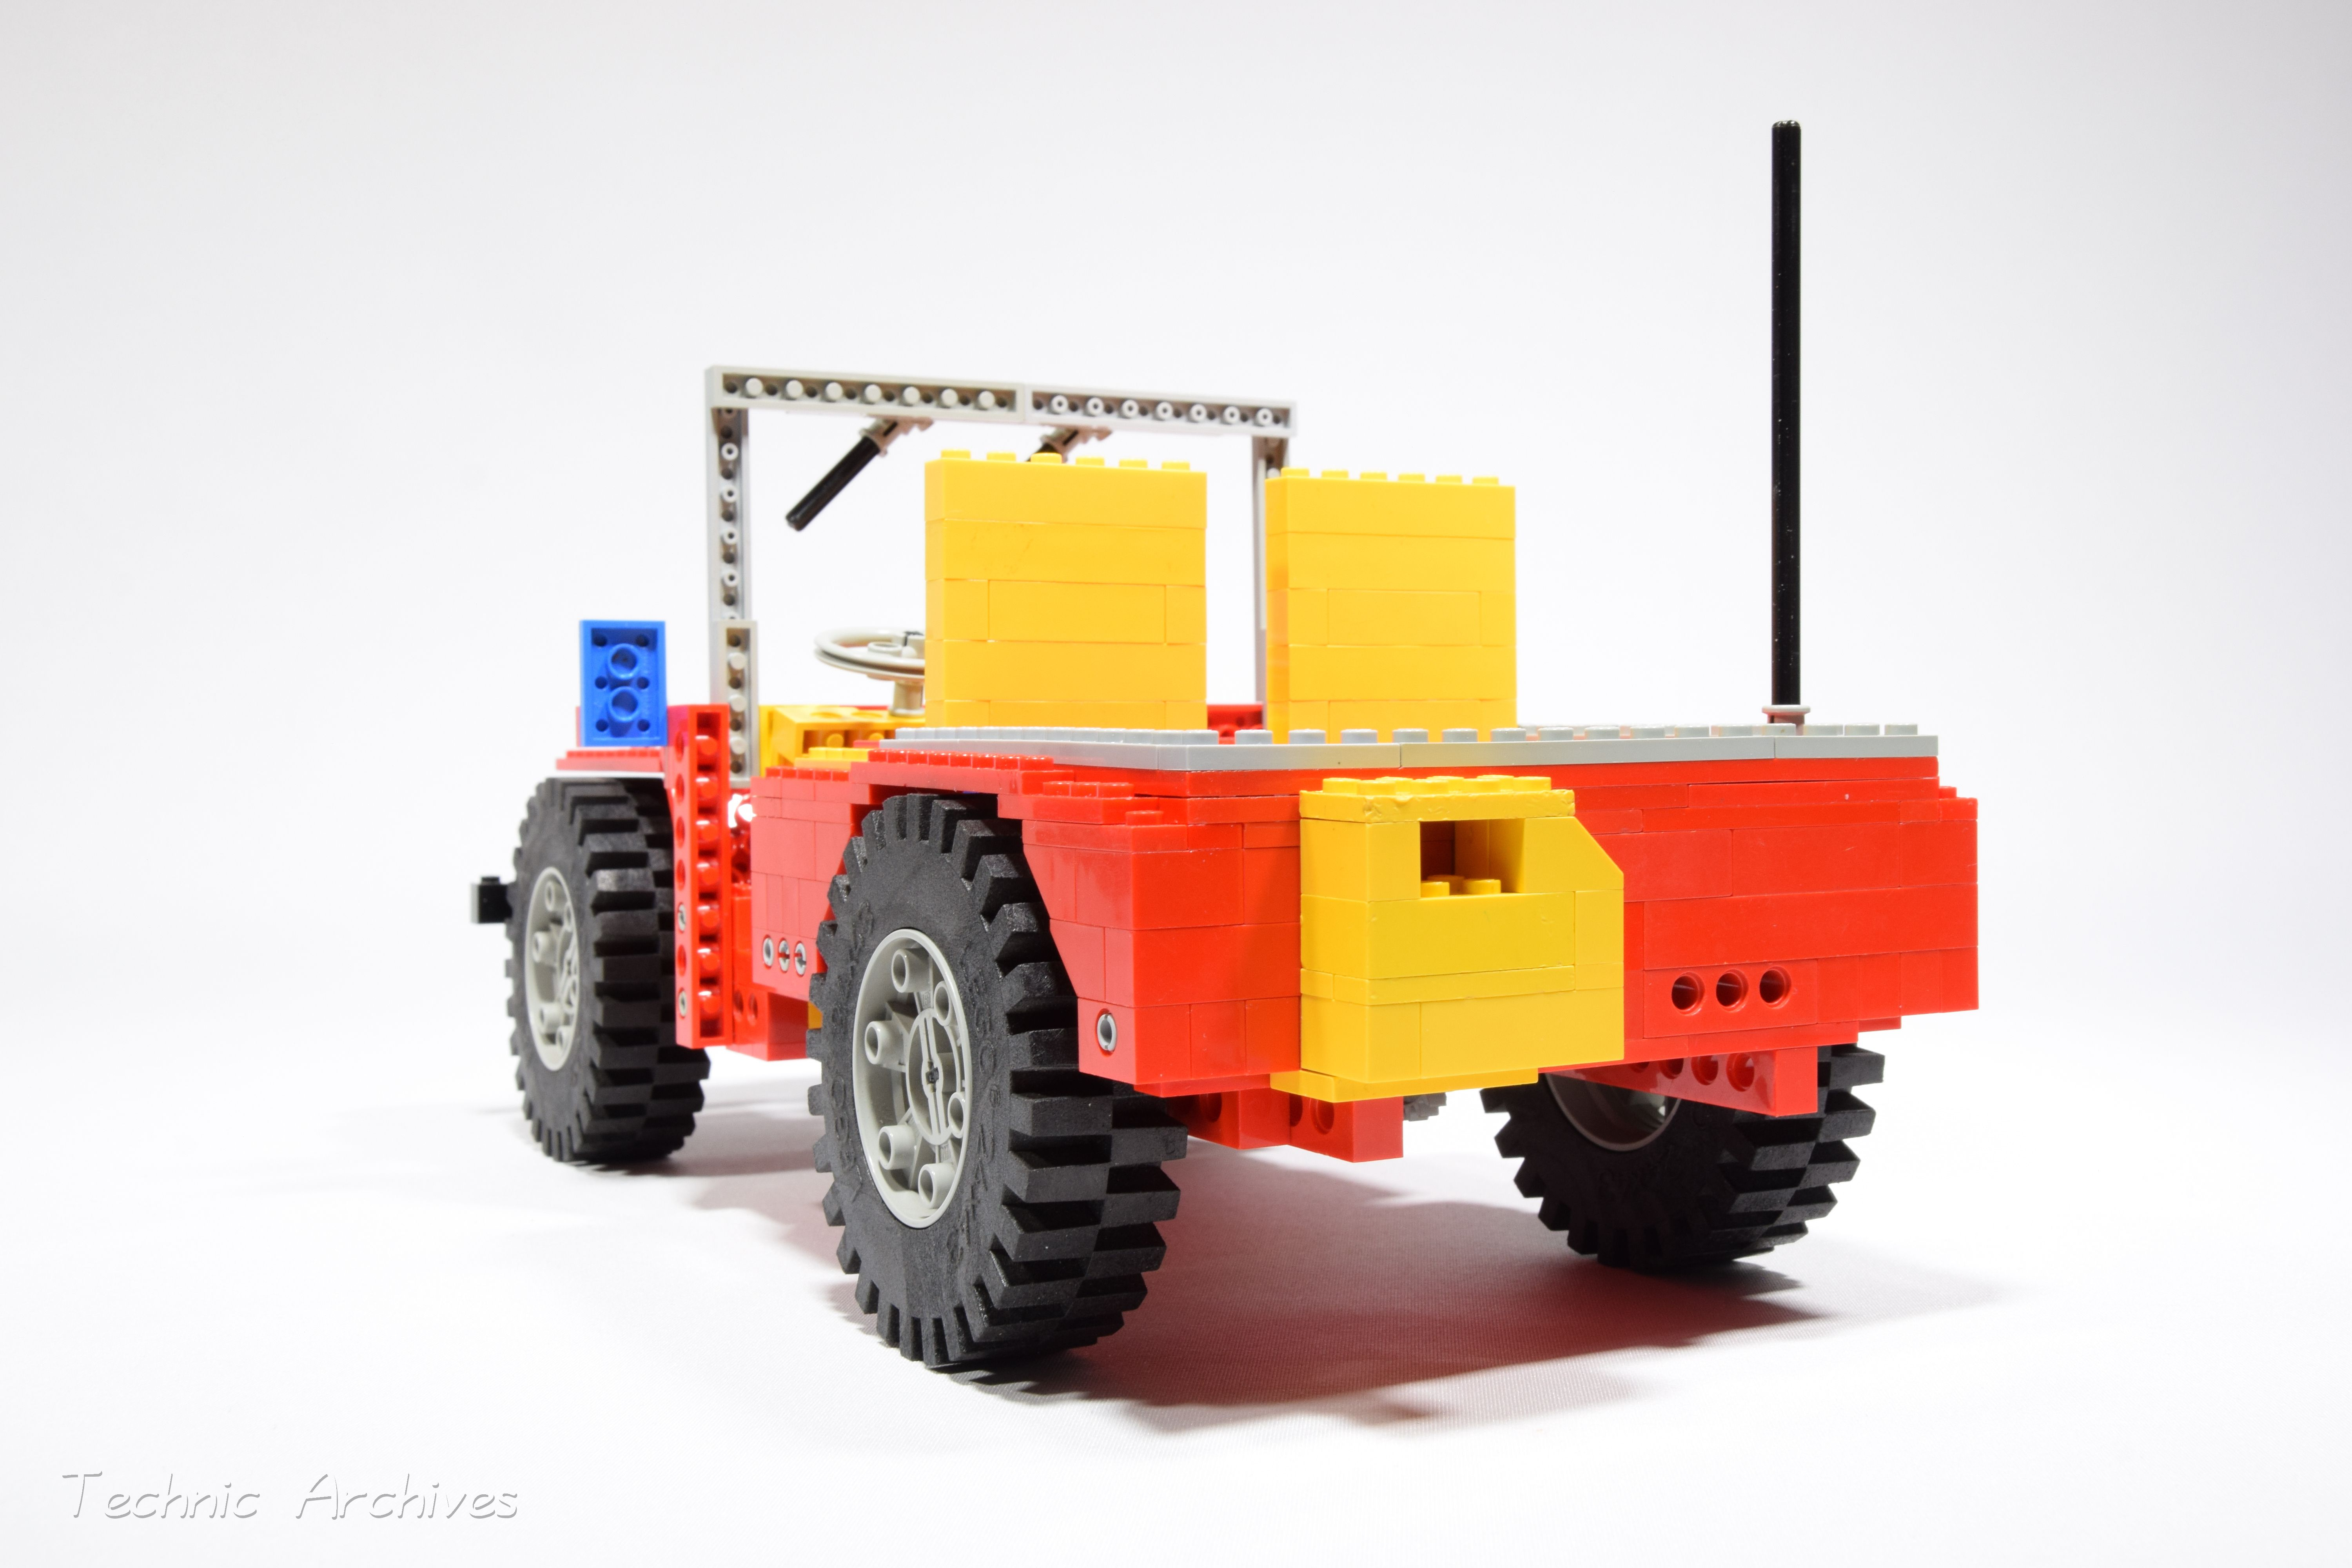 Lego Technic 853 / 956 Auto Chassis the very first Lego